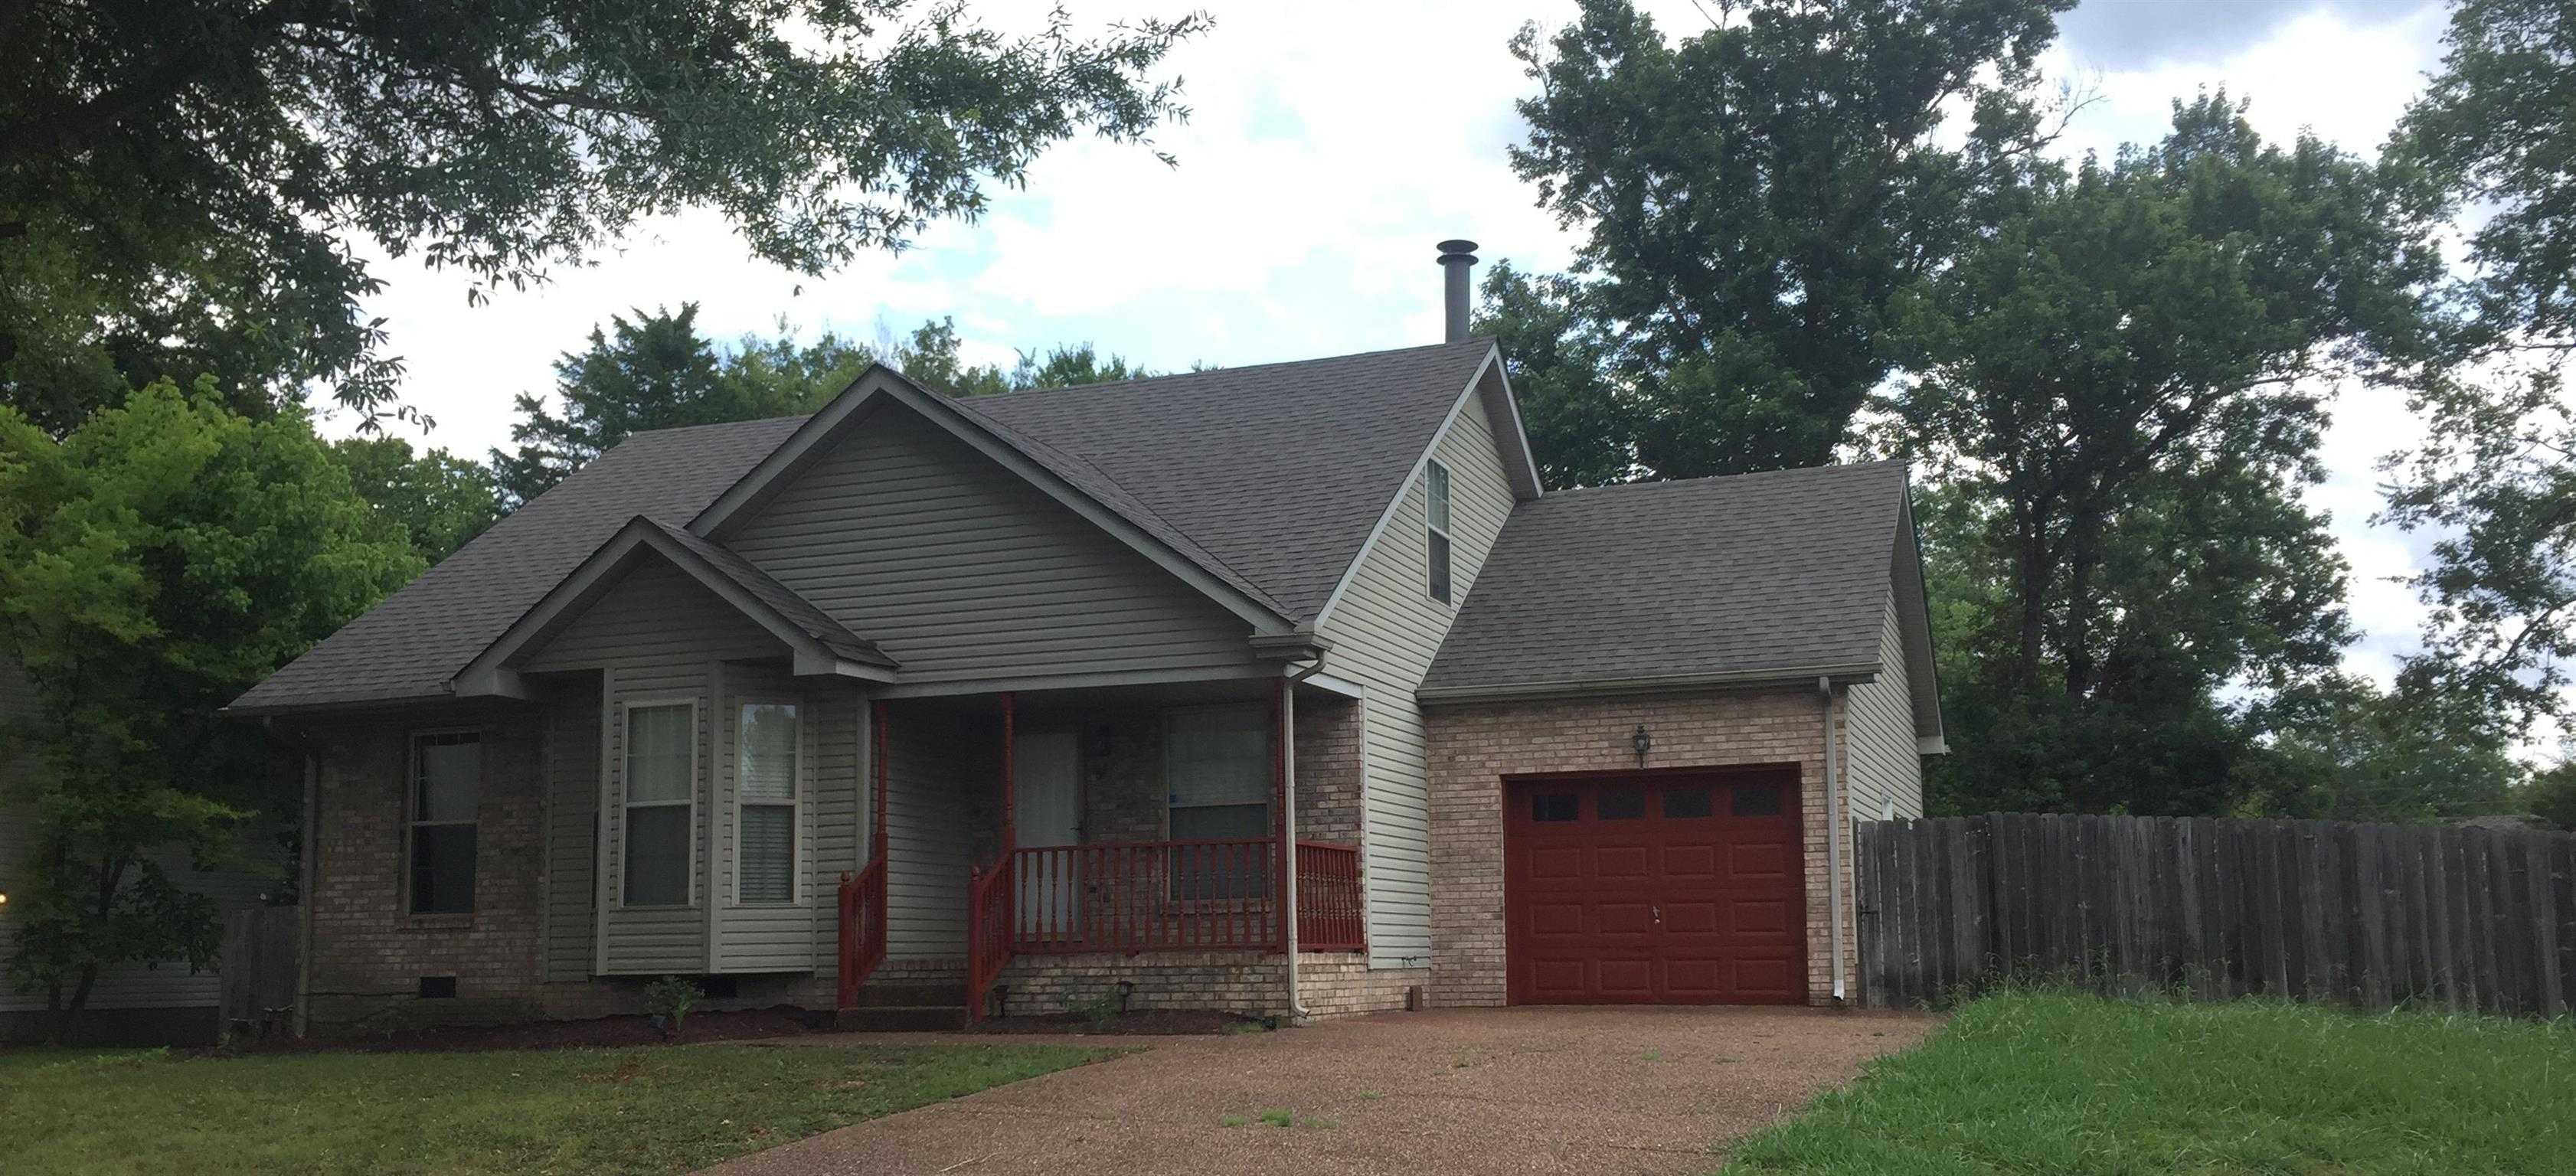 $237,500 - 3Br/2Ba -  for Sale in King Court, Old Hickory